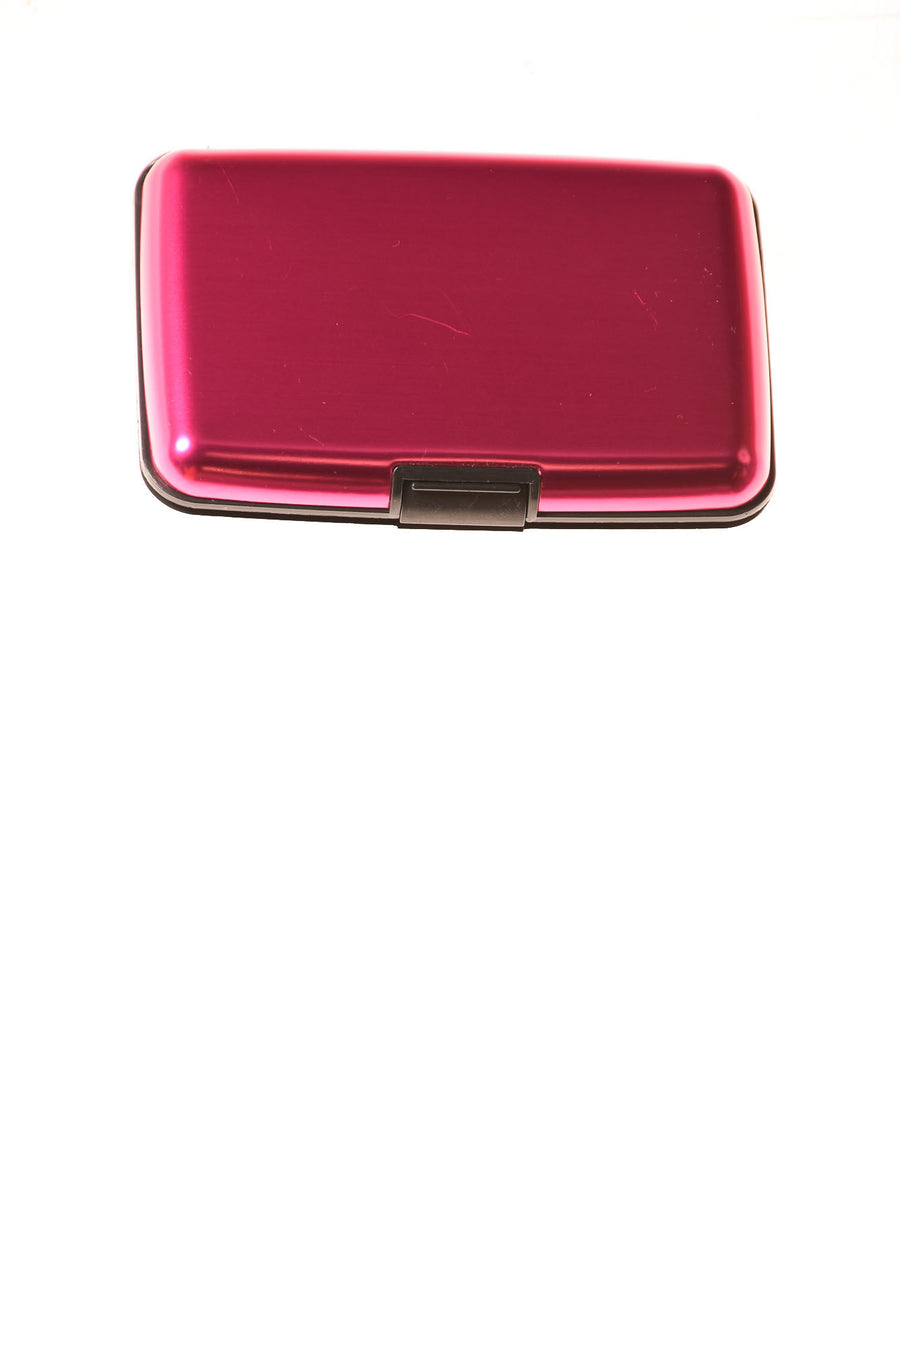 USED Columbia Women's Wallet N/A Pink